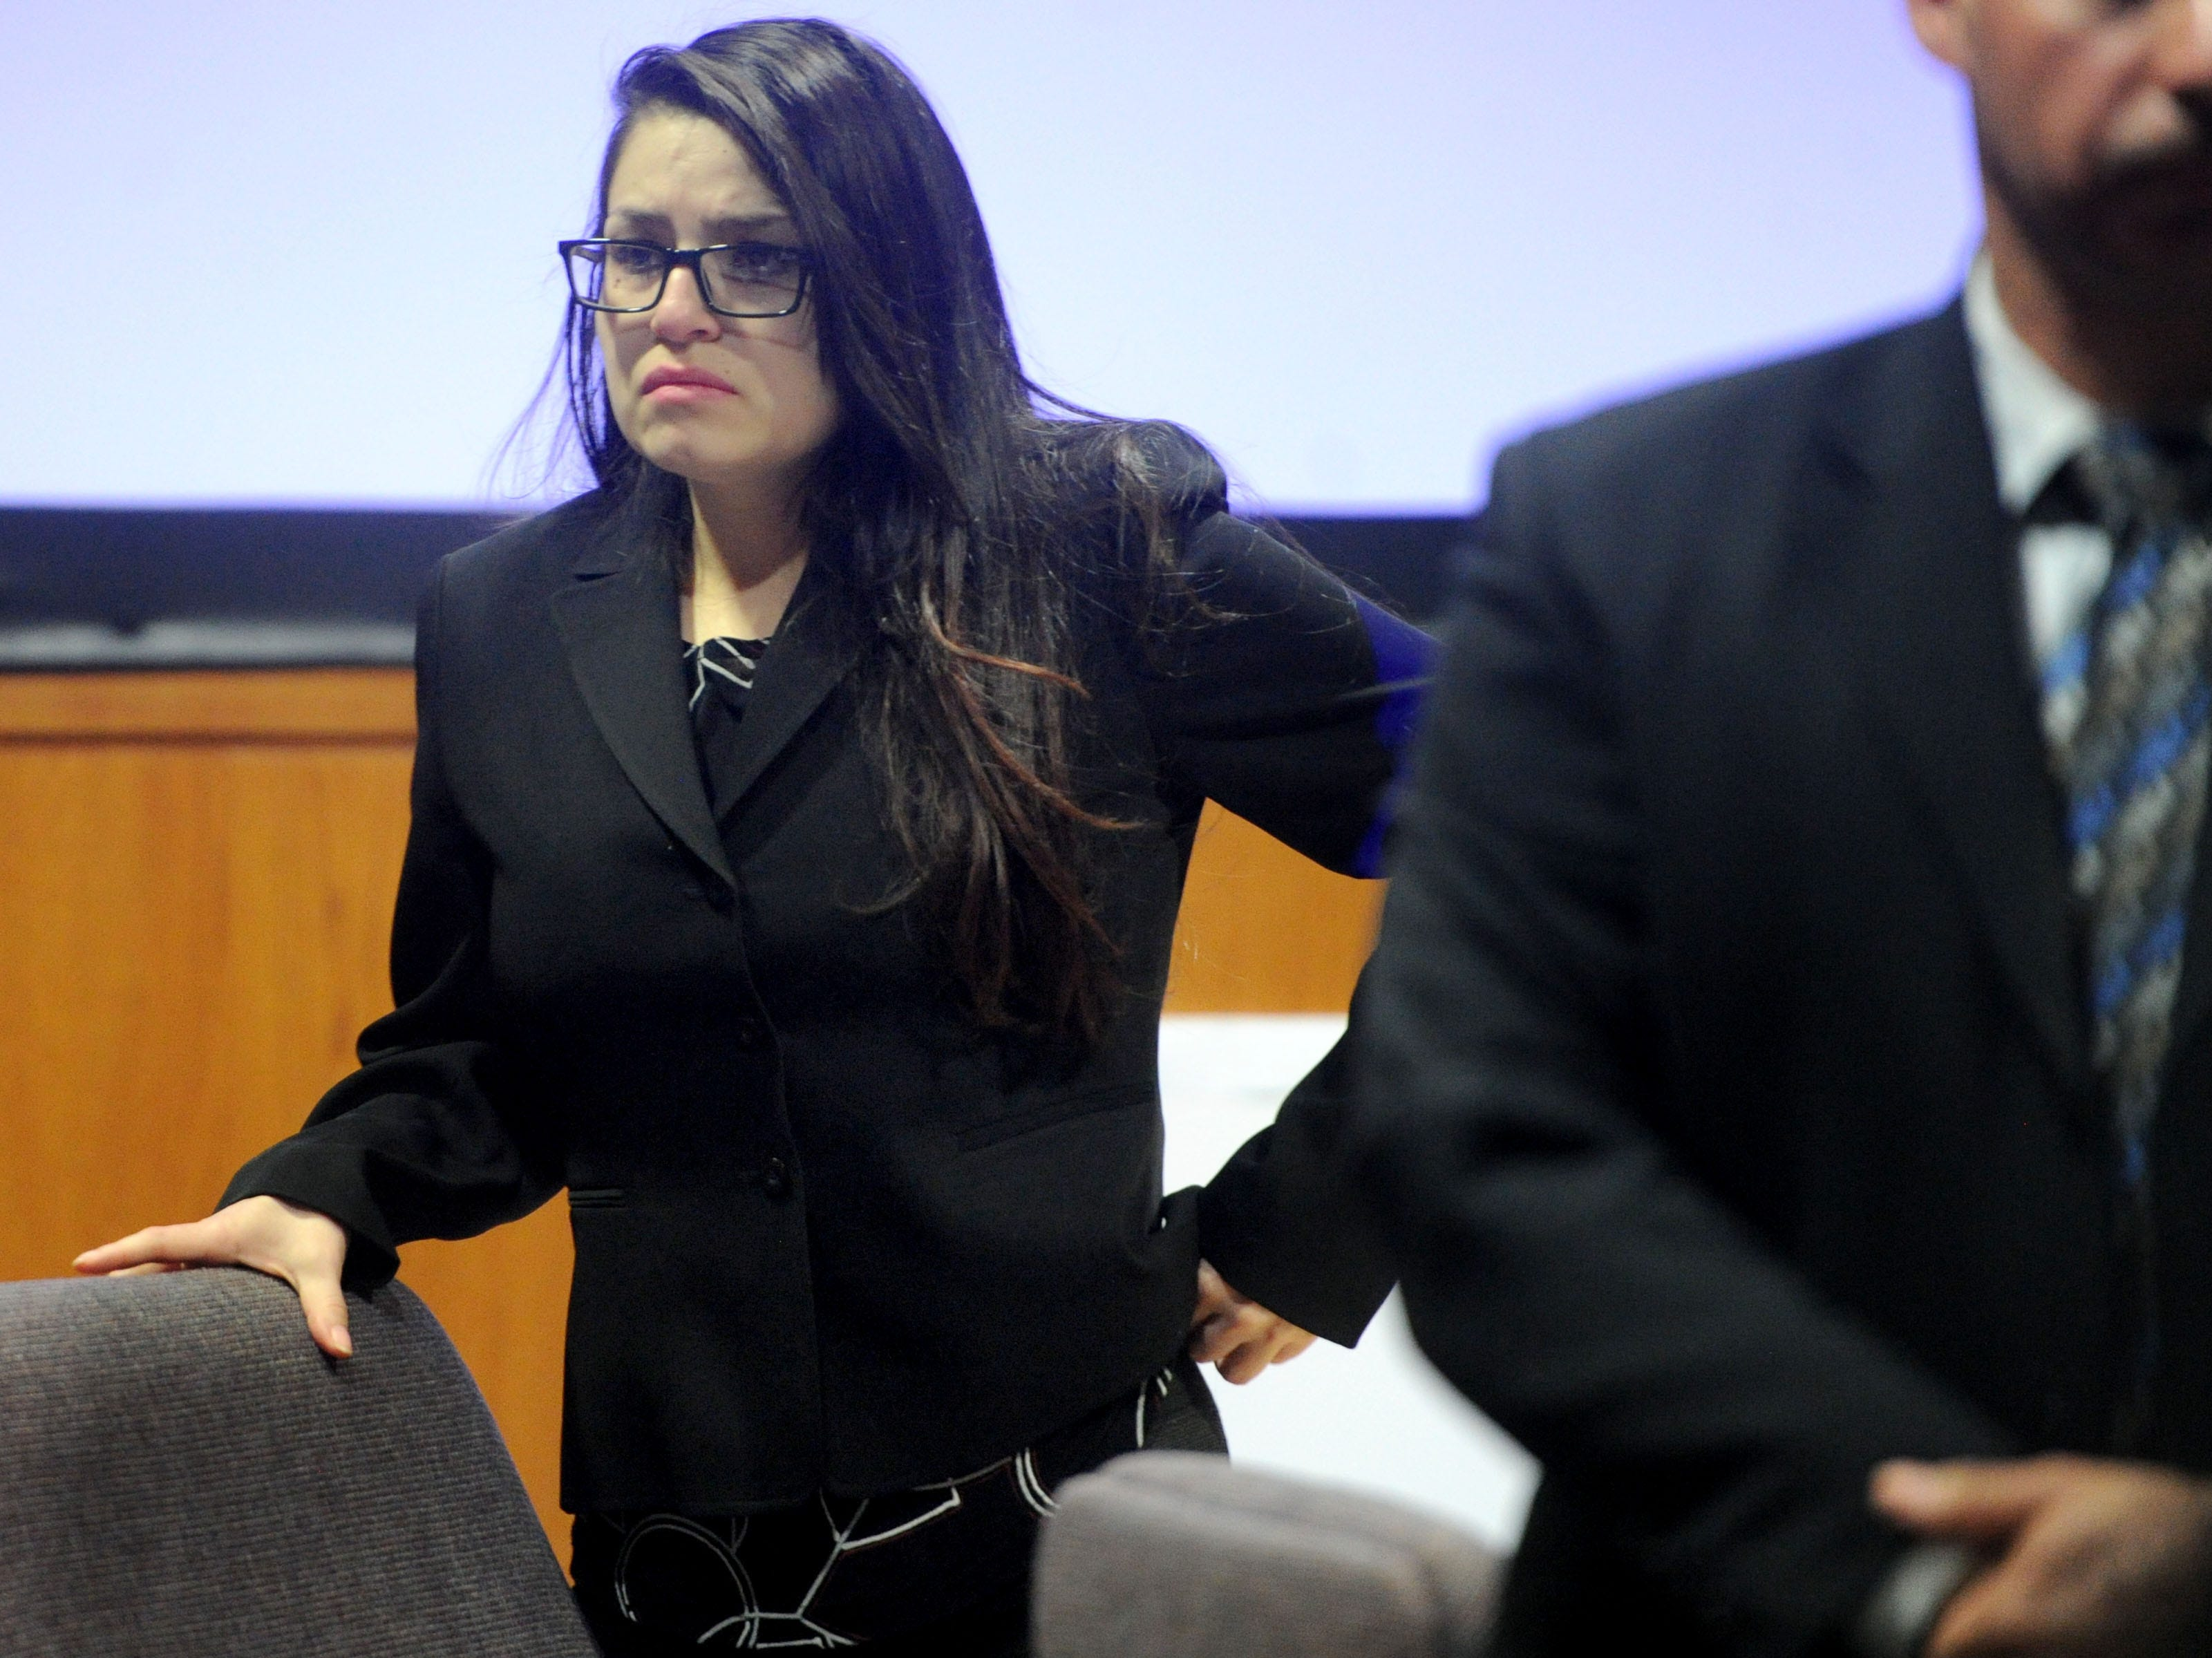 Mayra Chavez, 27, stands up as the jurors come inside the courtroom Tuesday for the opening statements of her trial at Ventura County Superior Court. She is accused of killing her 3-year-old daughter Kimberly Lopez who authorities believe to be dead somewhere in Mexico.